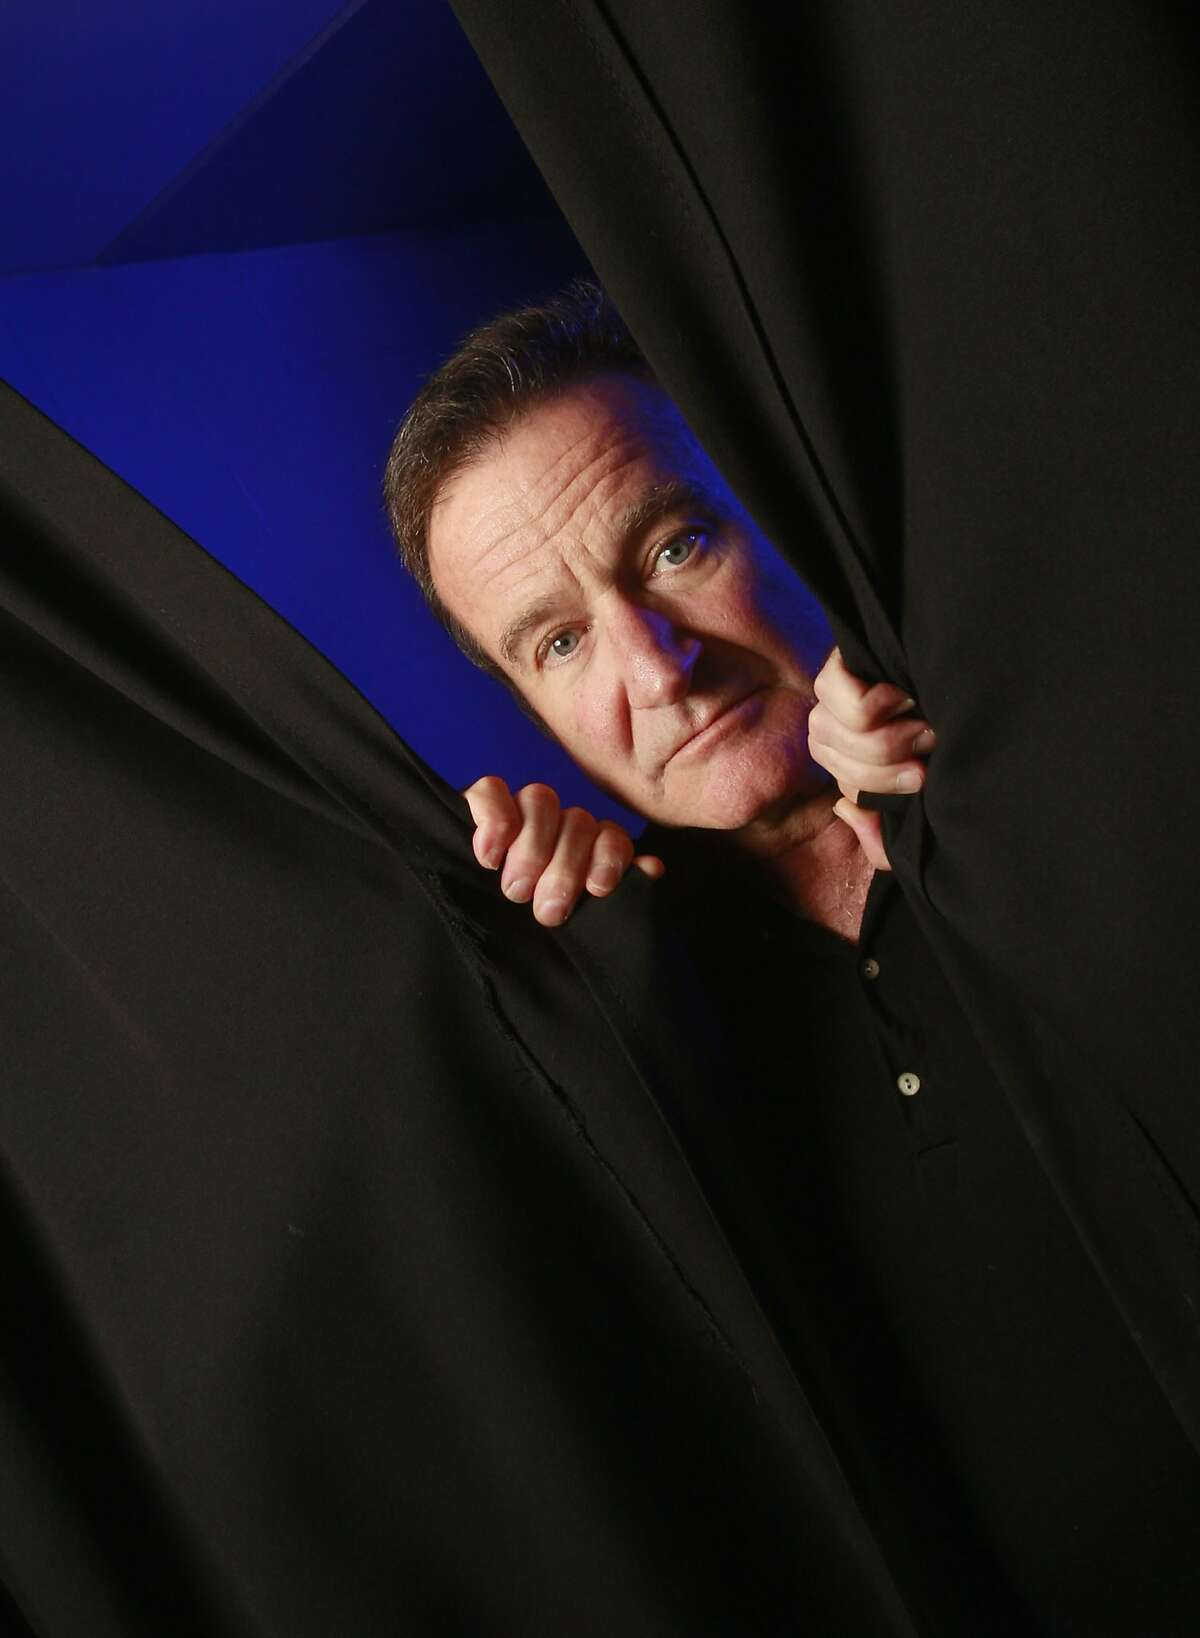 FILE -- Robin Williams, during a tour of 30 cities, backstage before his performance at the Ted Constant Convocation Center in Norfolk, Va., Oct. 26, 2009. Williams, an Oscar-winning actor and comedian, was found unconscious at home around noon on Aug. 11, 2014, a Marin County Sheriff's Office statement said. His death appeared to be a suicide due to asphyxia, the statement said. He was 63. (Jay Paul/The New York Times)